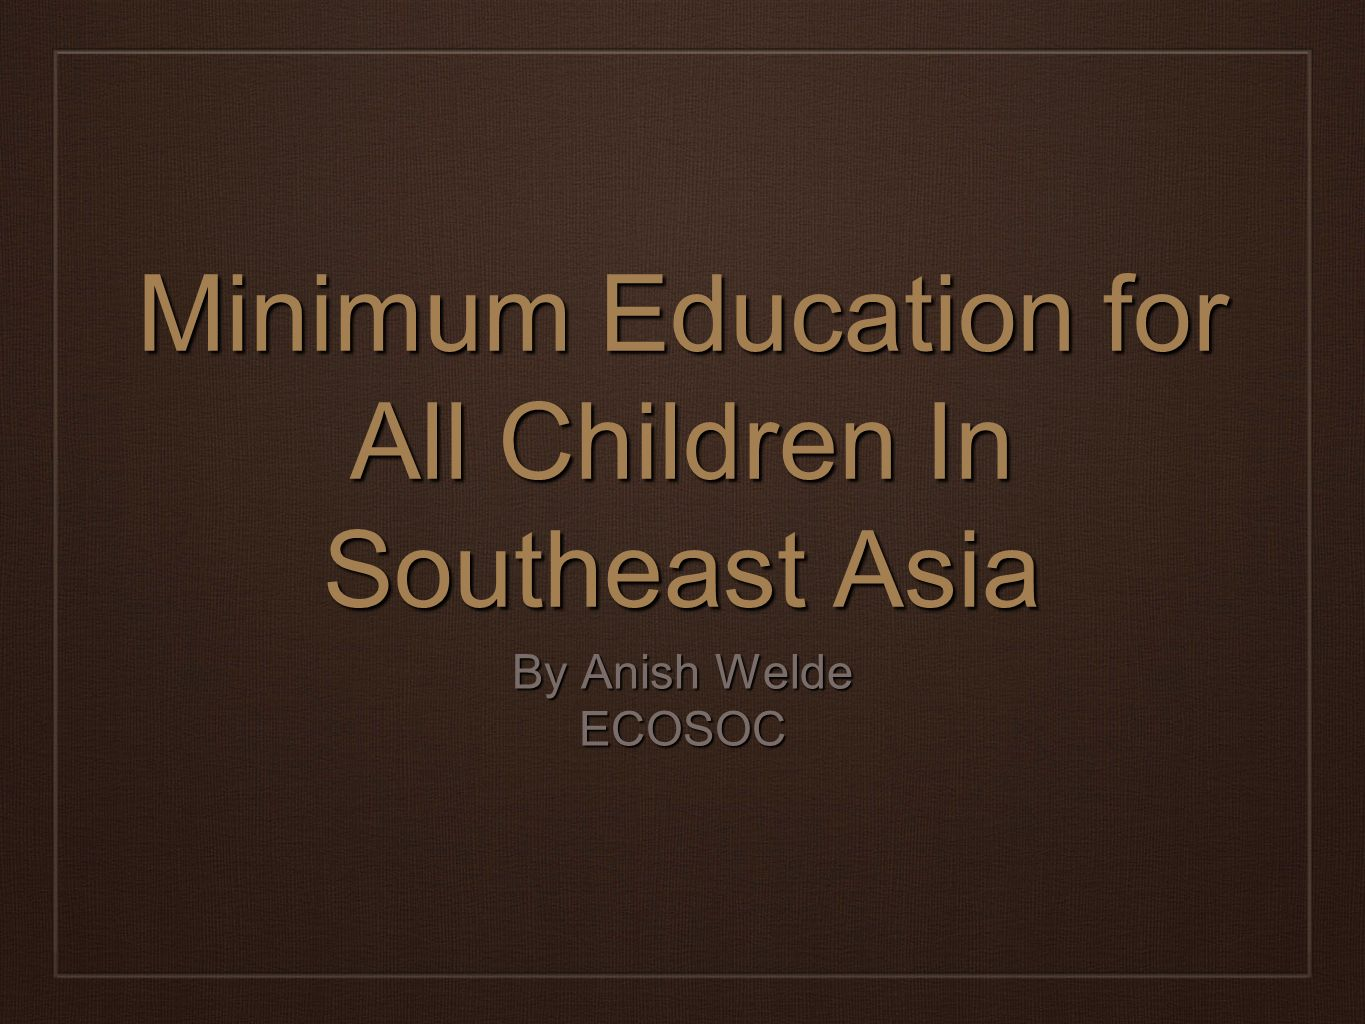 Minimum Education for All Children In Southeast Asia